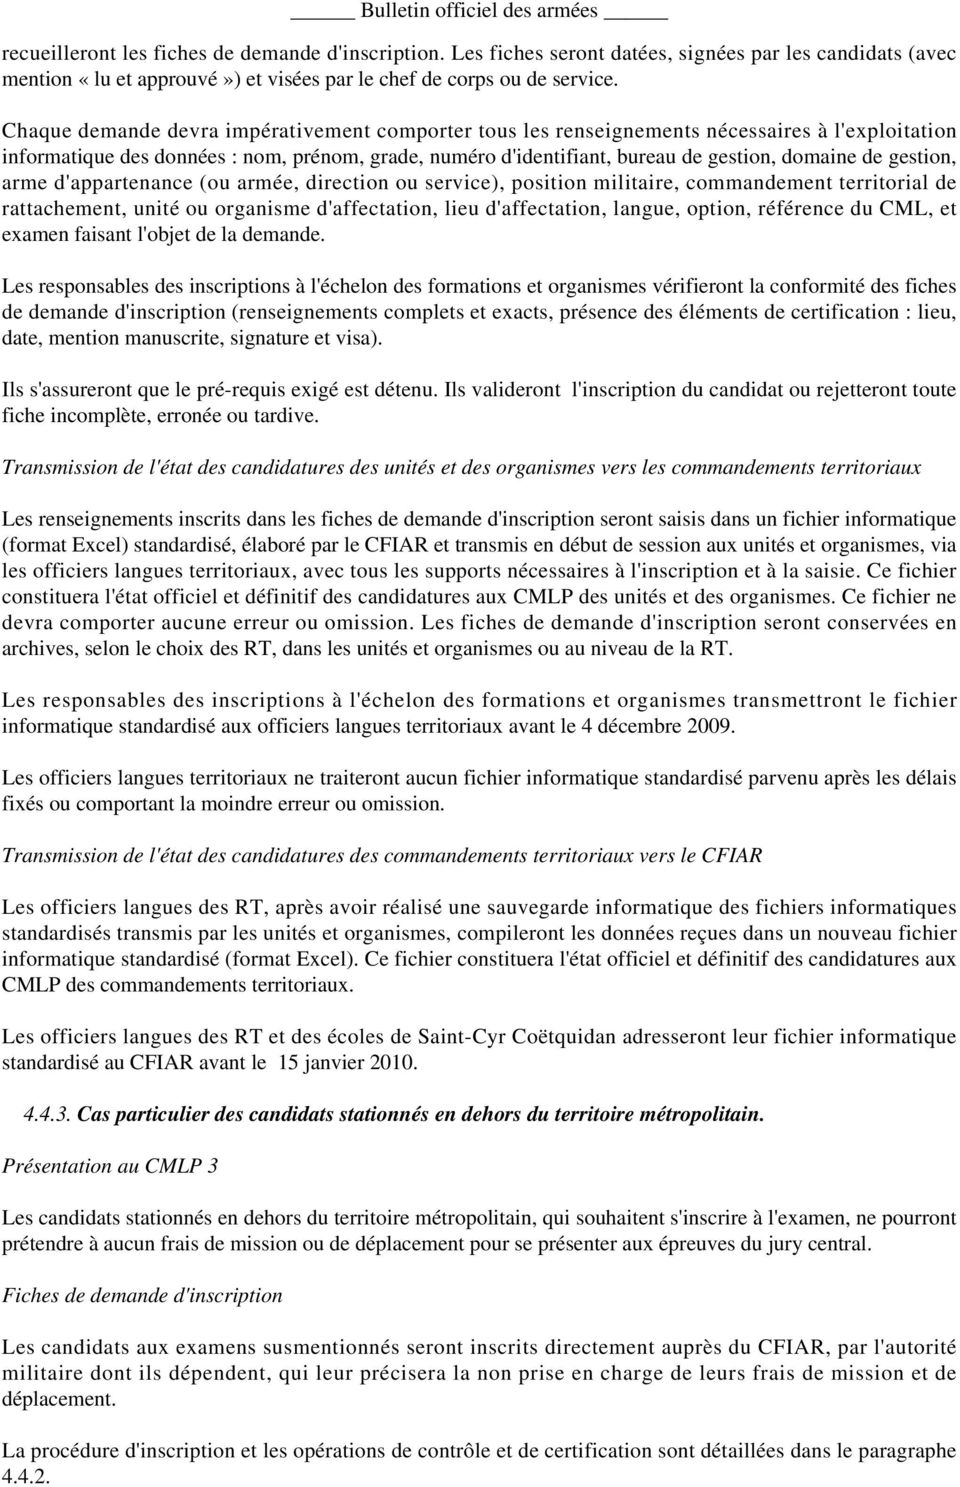 gestion, arme d'appartenance (ou armée, direction ou service), position militaire, commandement territorial de rattachement, unité ou organisme d'affectation, lieu d'affectation, langue, option,